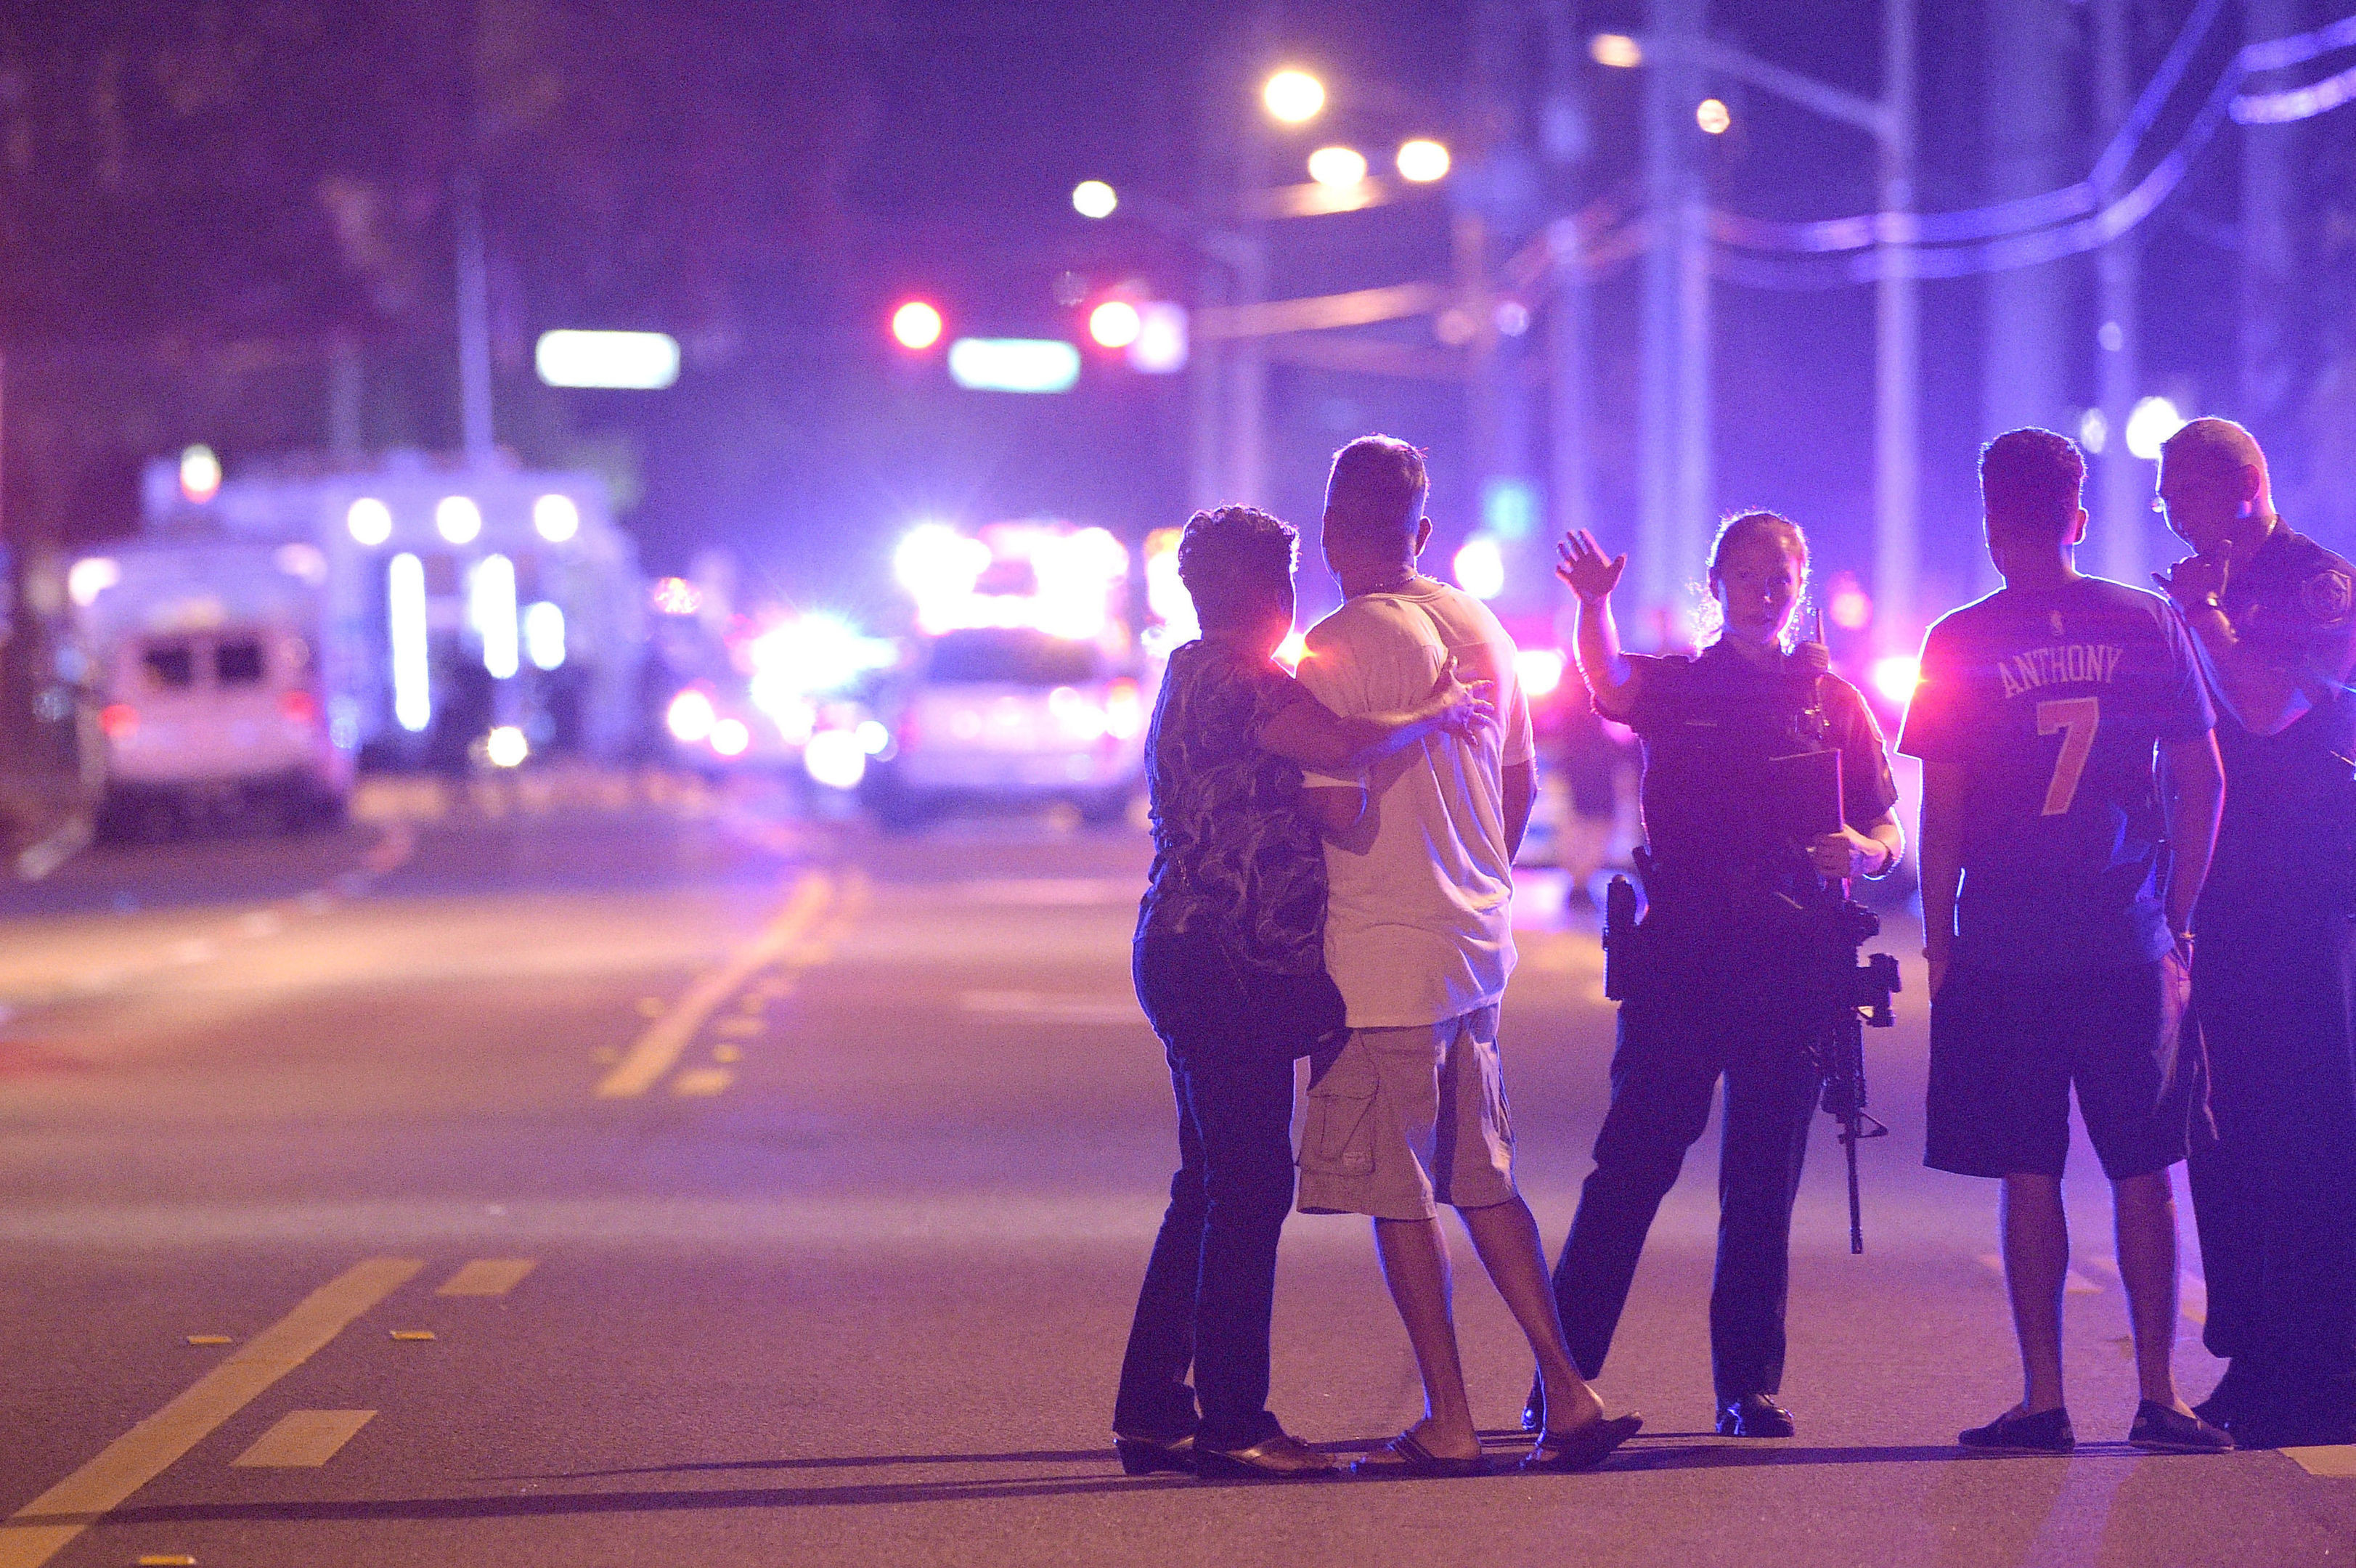 Orlando Police officers direct family members away from a multiple shooting at a nightclub in Orlando,.